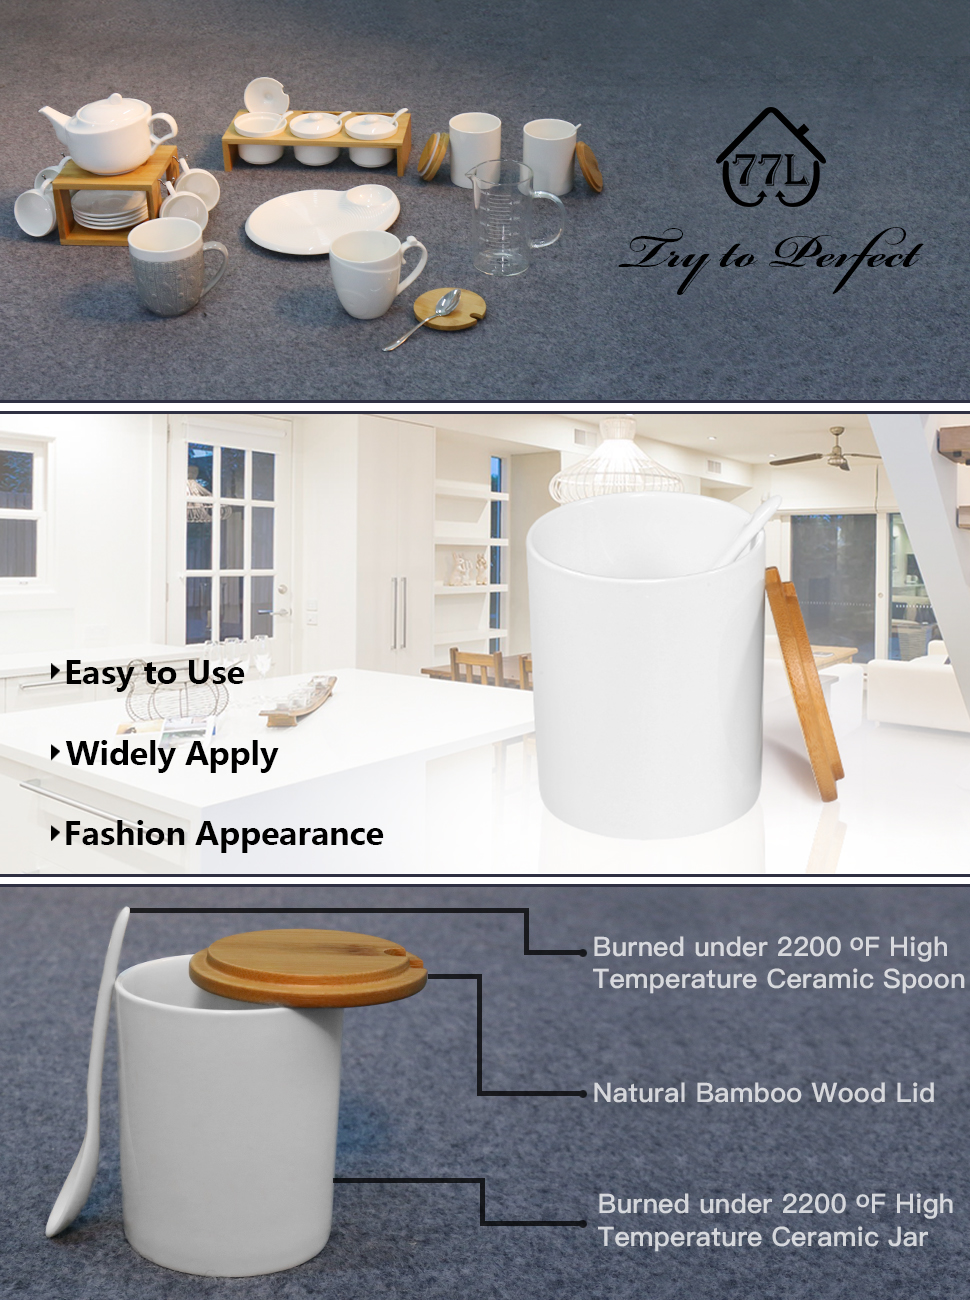 77L Sugar Bowl Is A Must Have For Modern Home U0026 Kitchen. Itu0027s Perfect For  Storing Sugar, Pepper, Spice, Etc. Elegant Design: The Glamorous White  Porcelain ...